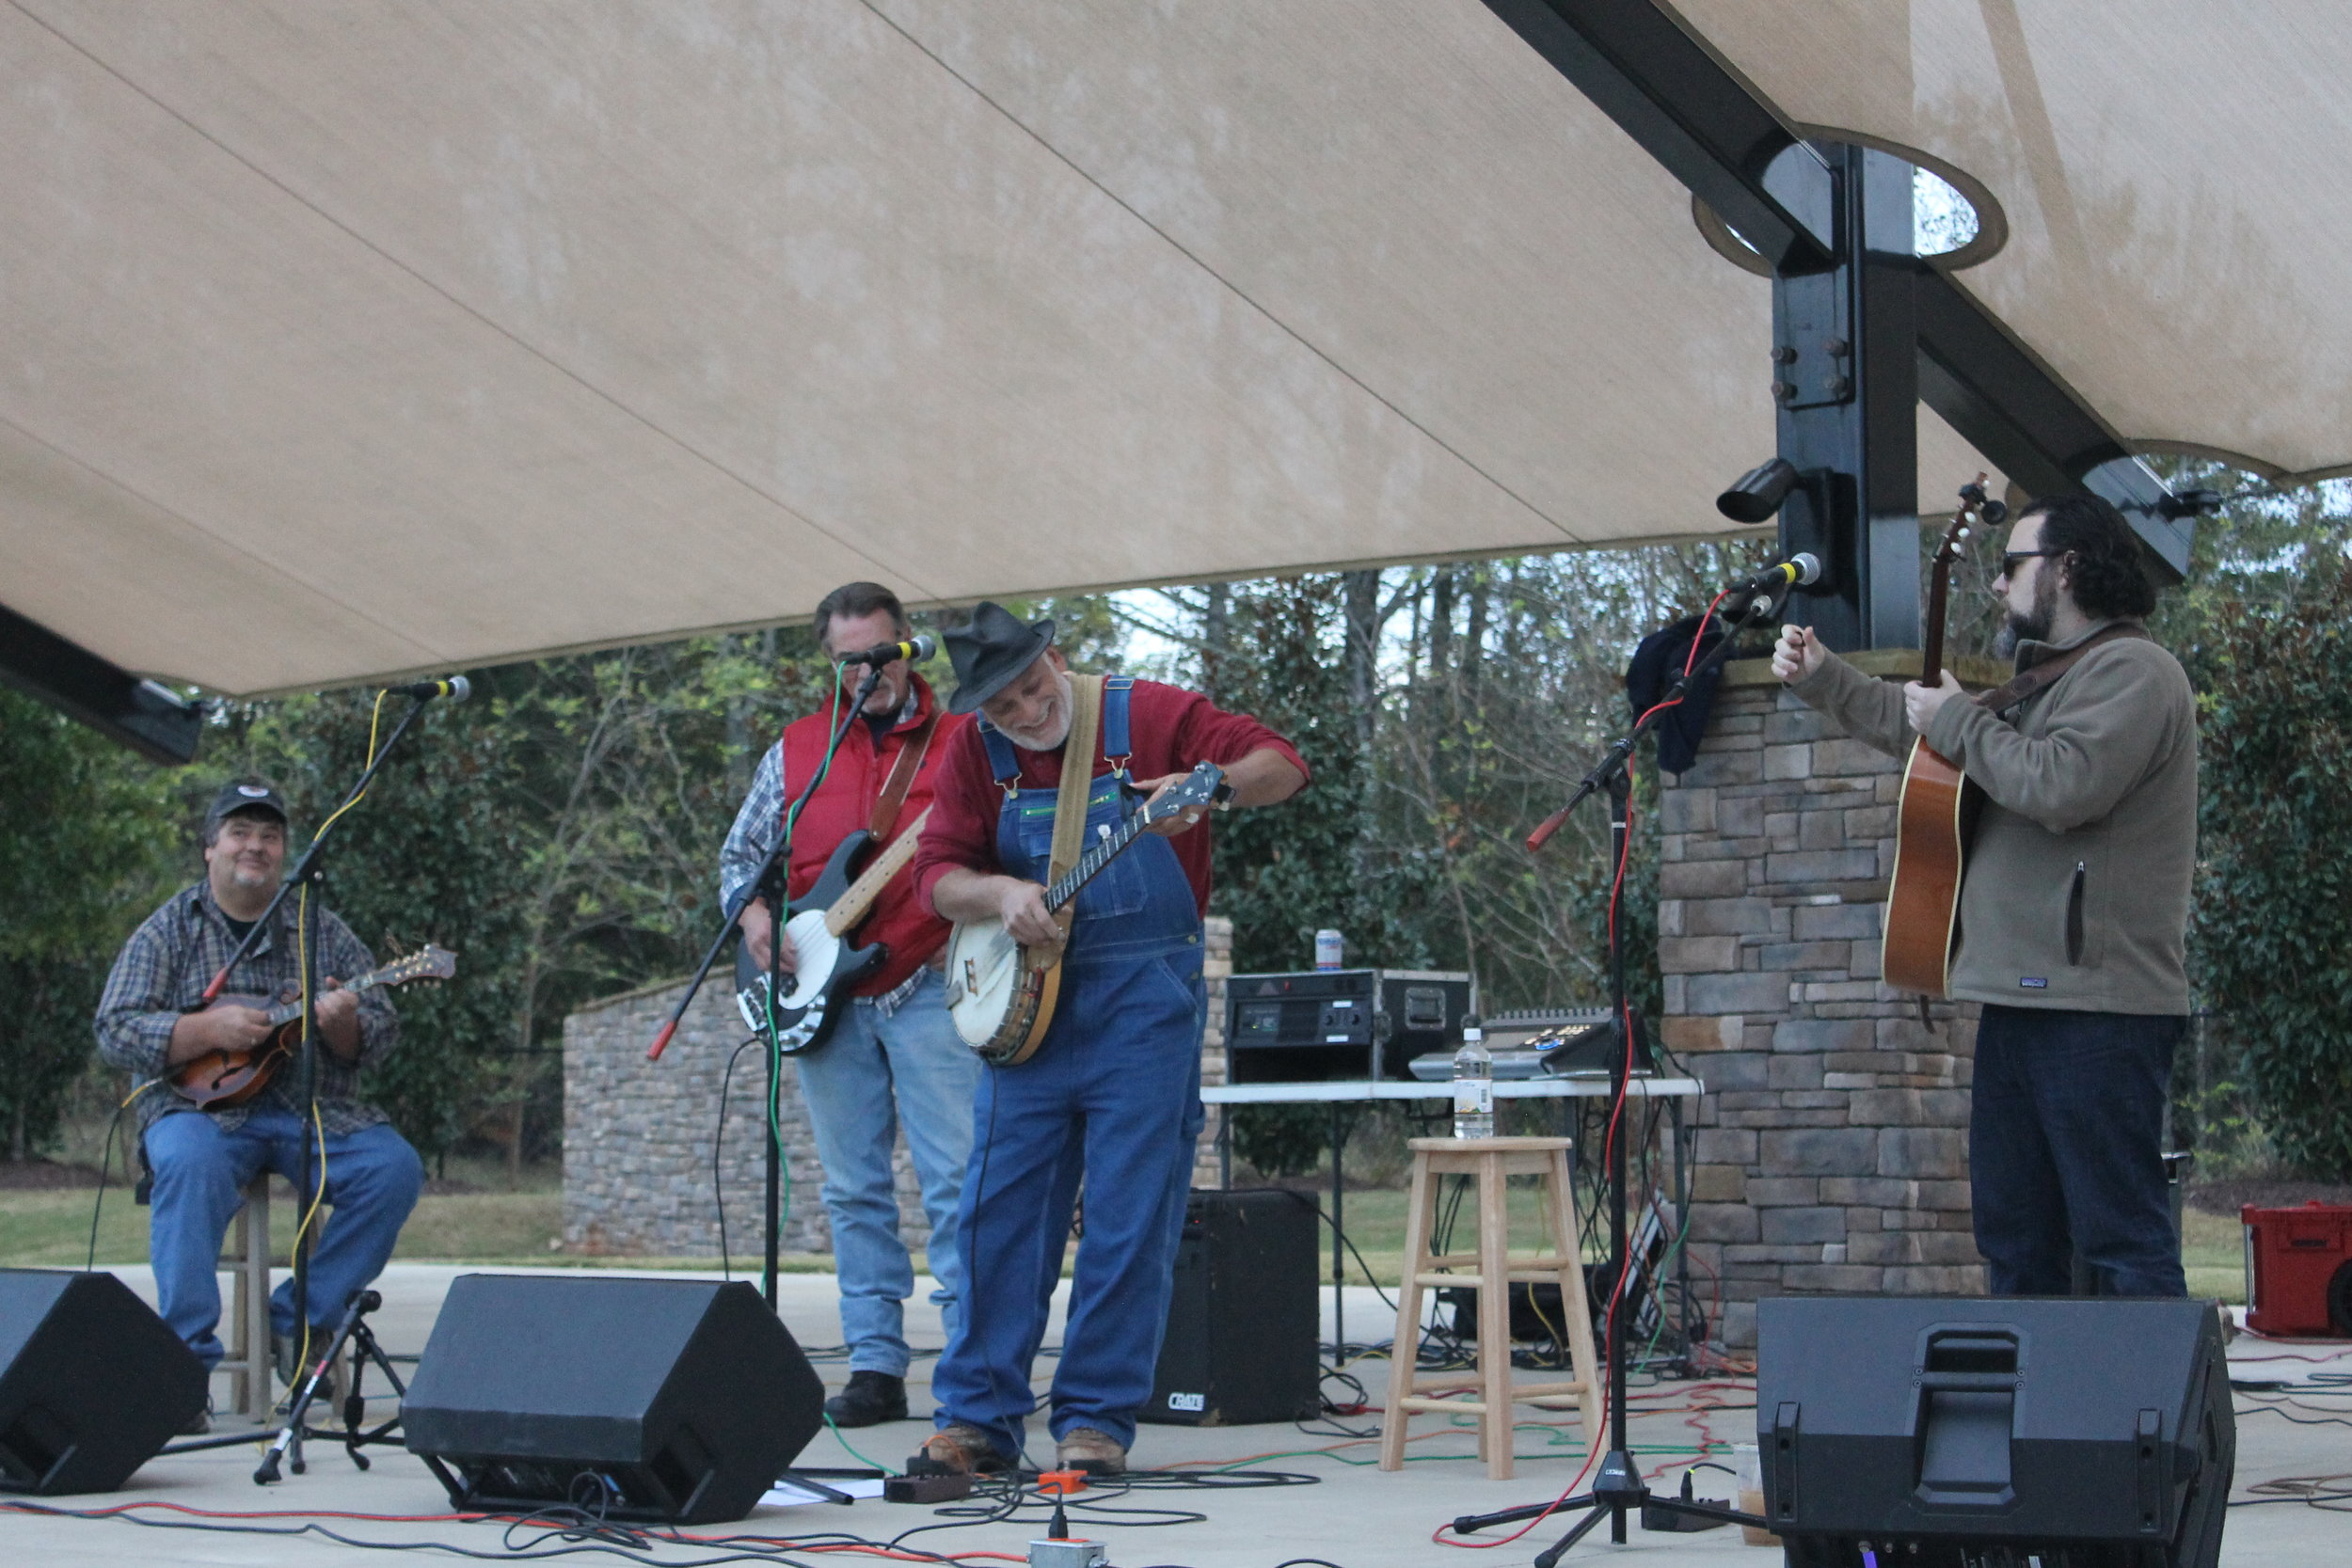 The bluegrass band, Grassbackerds, was the act for the evening.